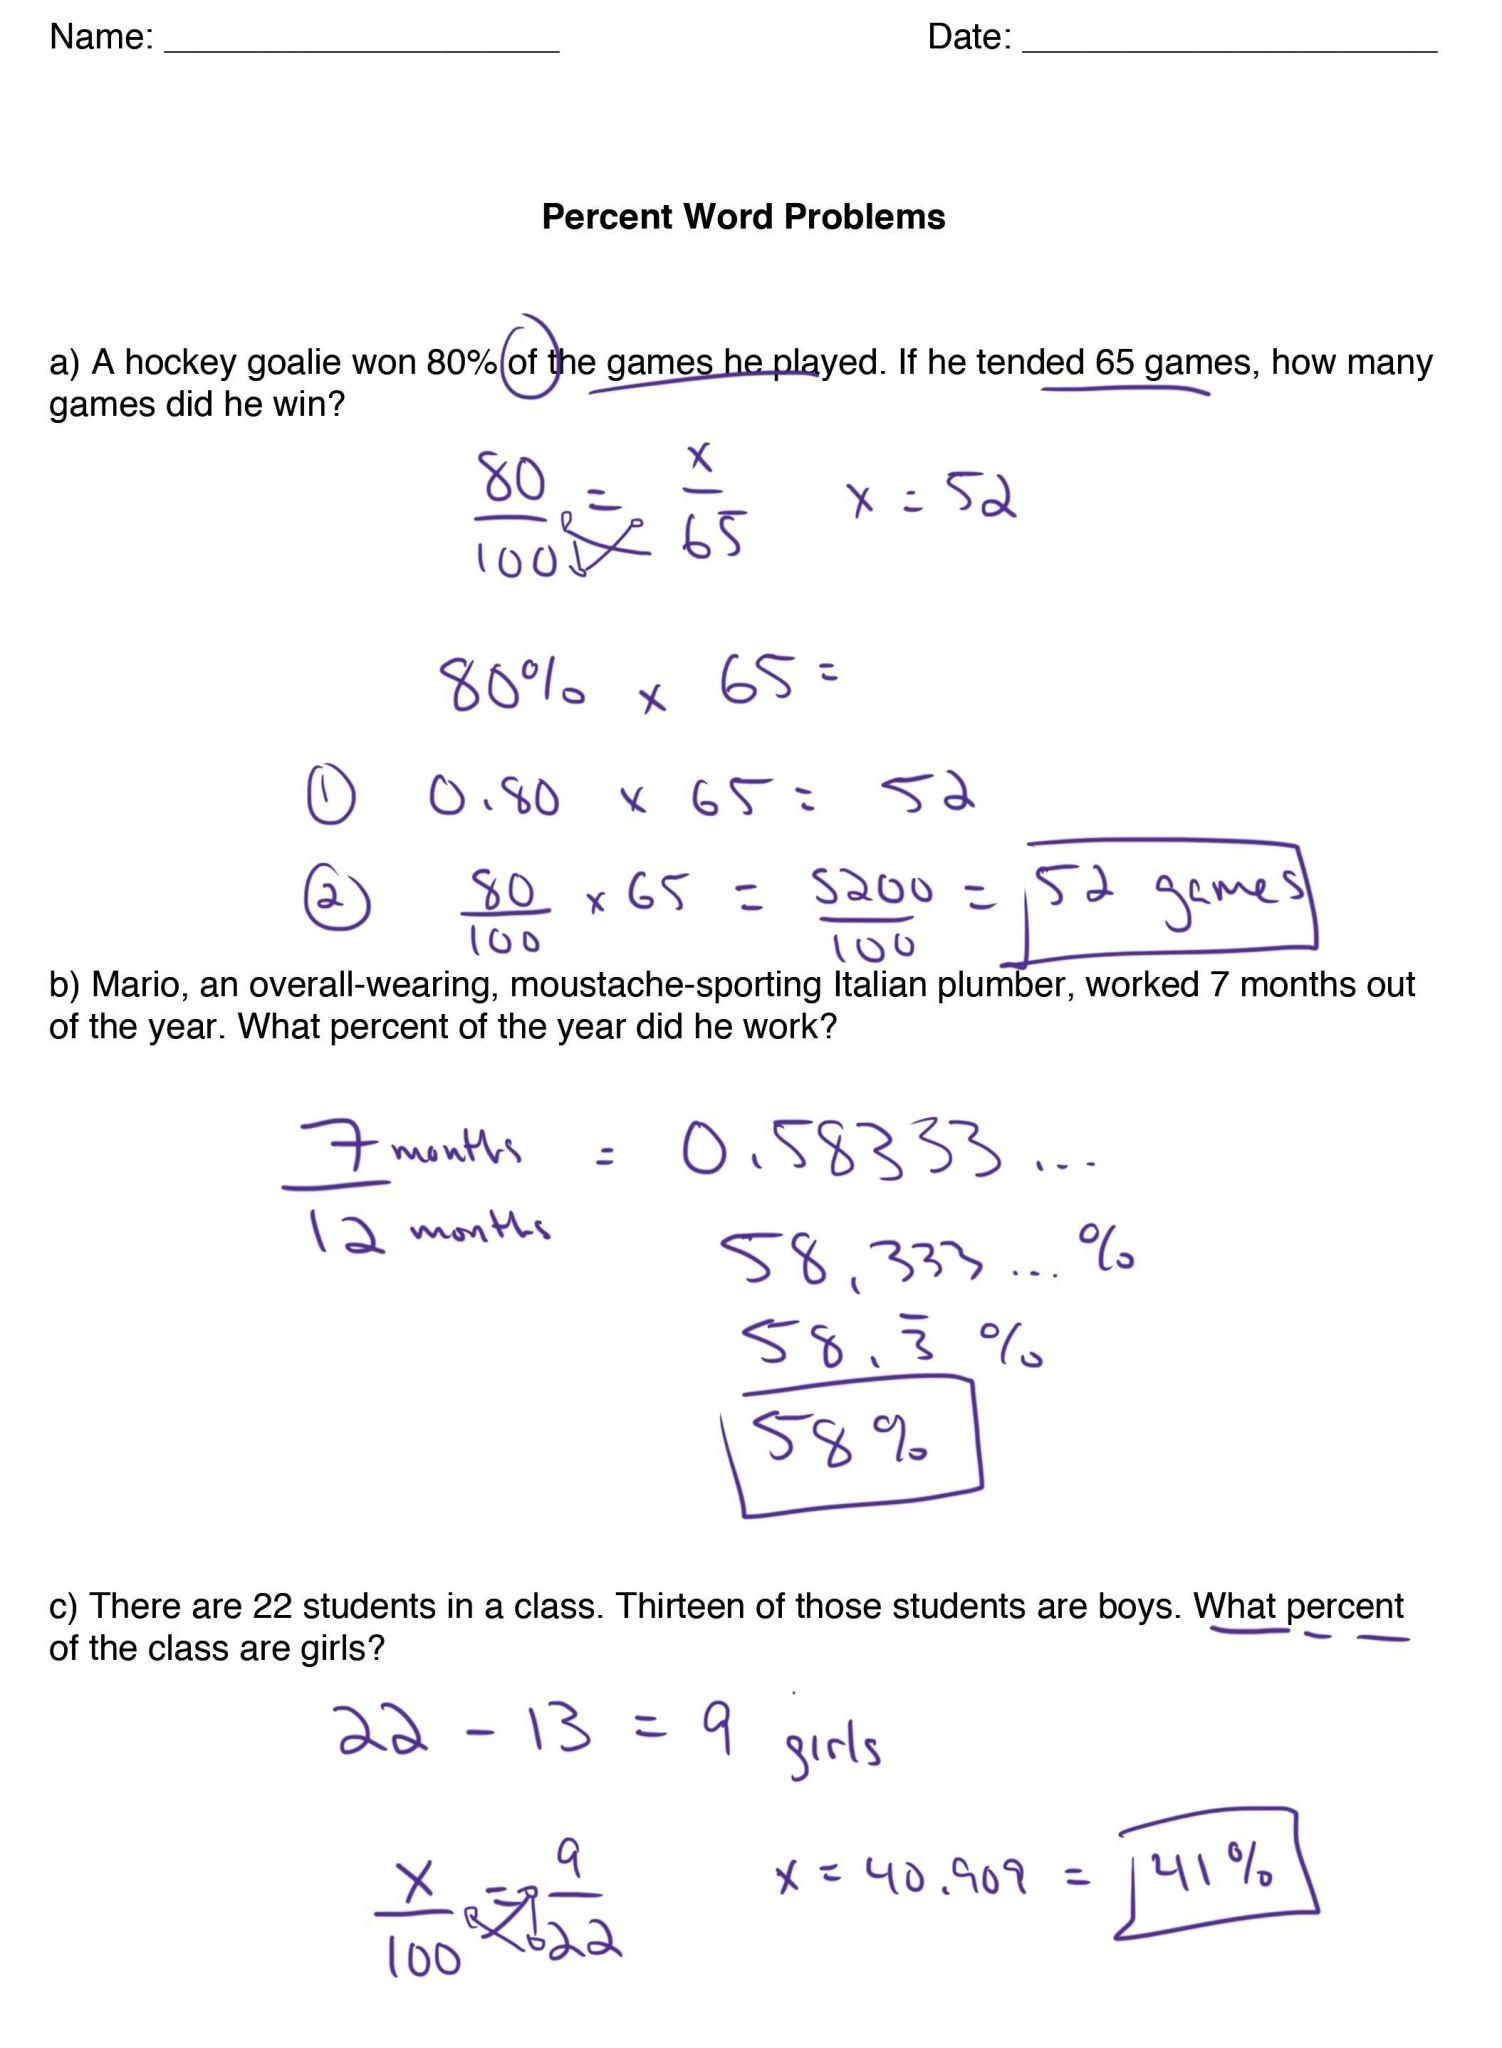 Percent Word Problem Worksheet